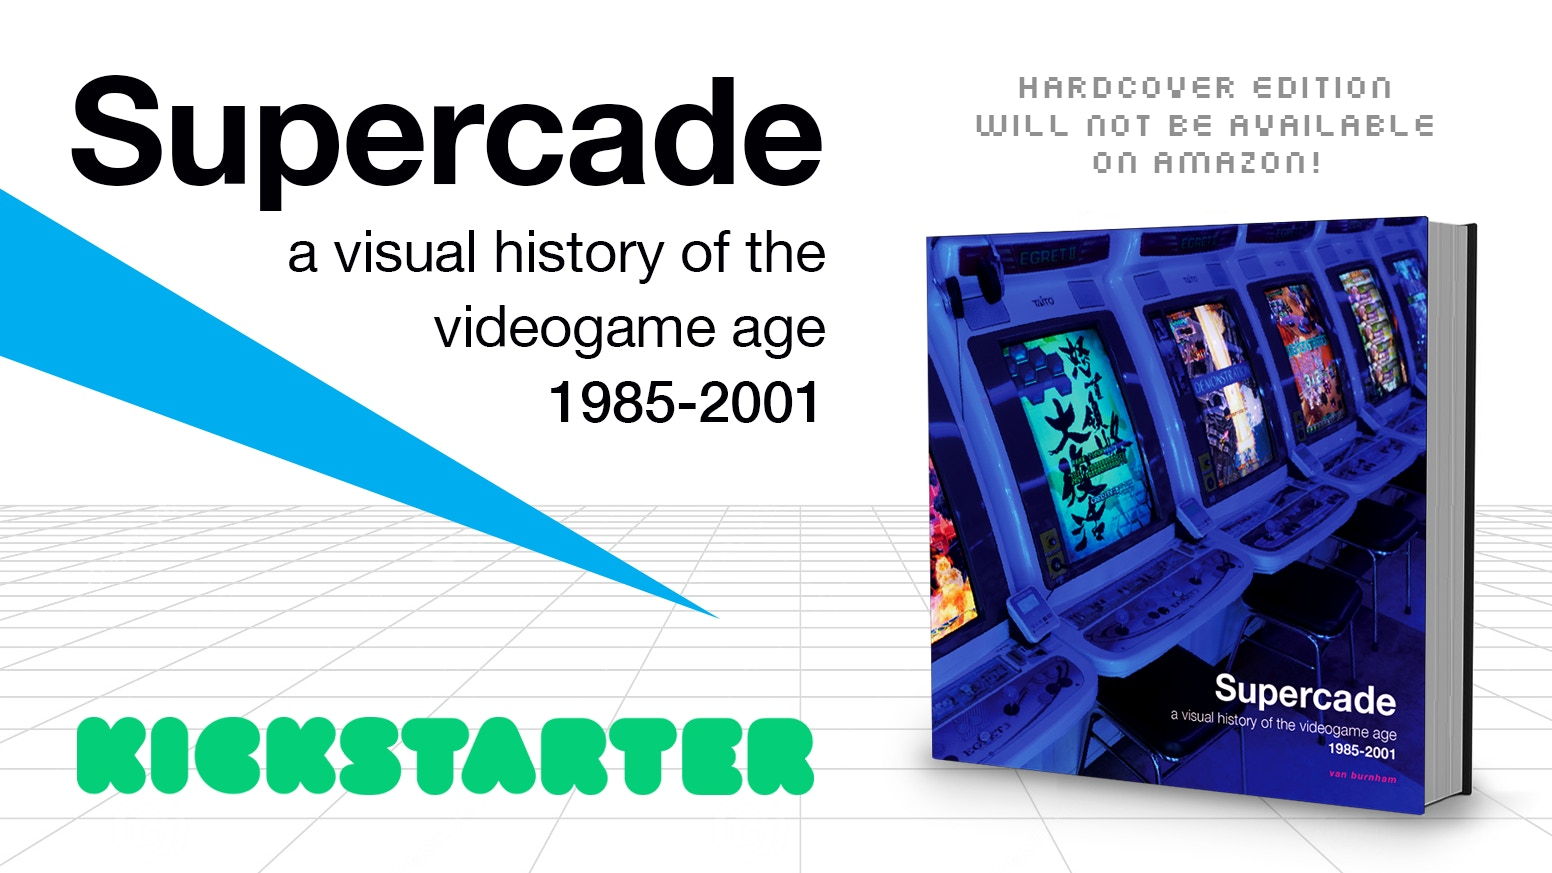 The sequel to Supercade, the first book to illustrate and document the history, legacy, and visual language of the videogame phenomenon